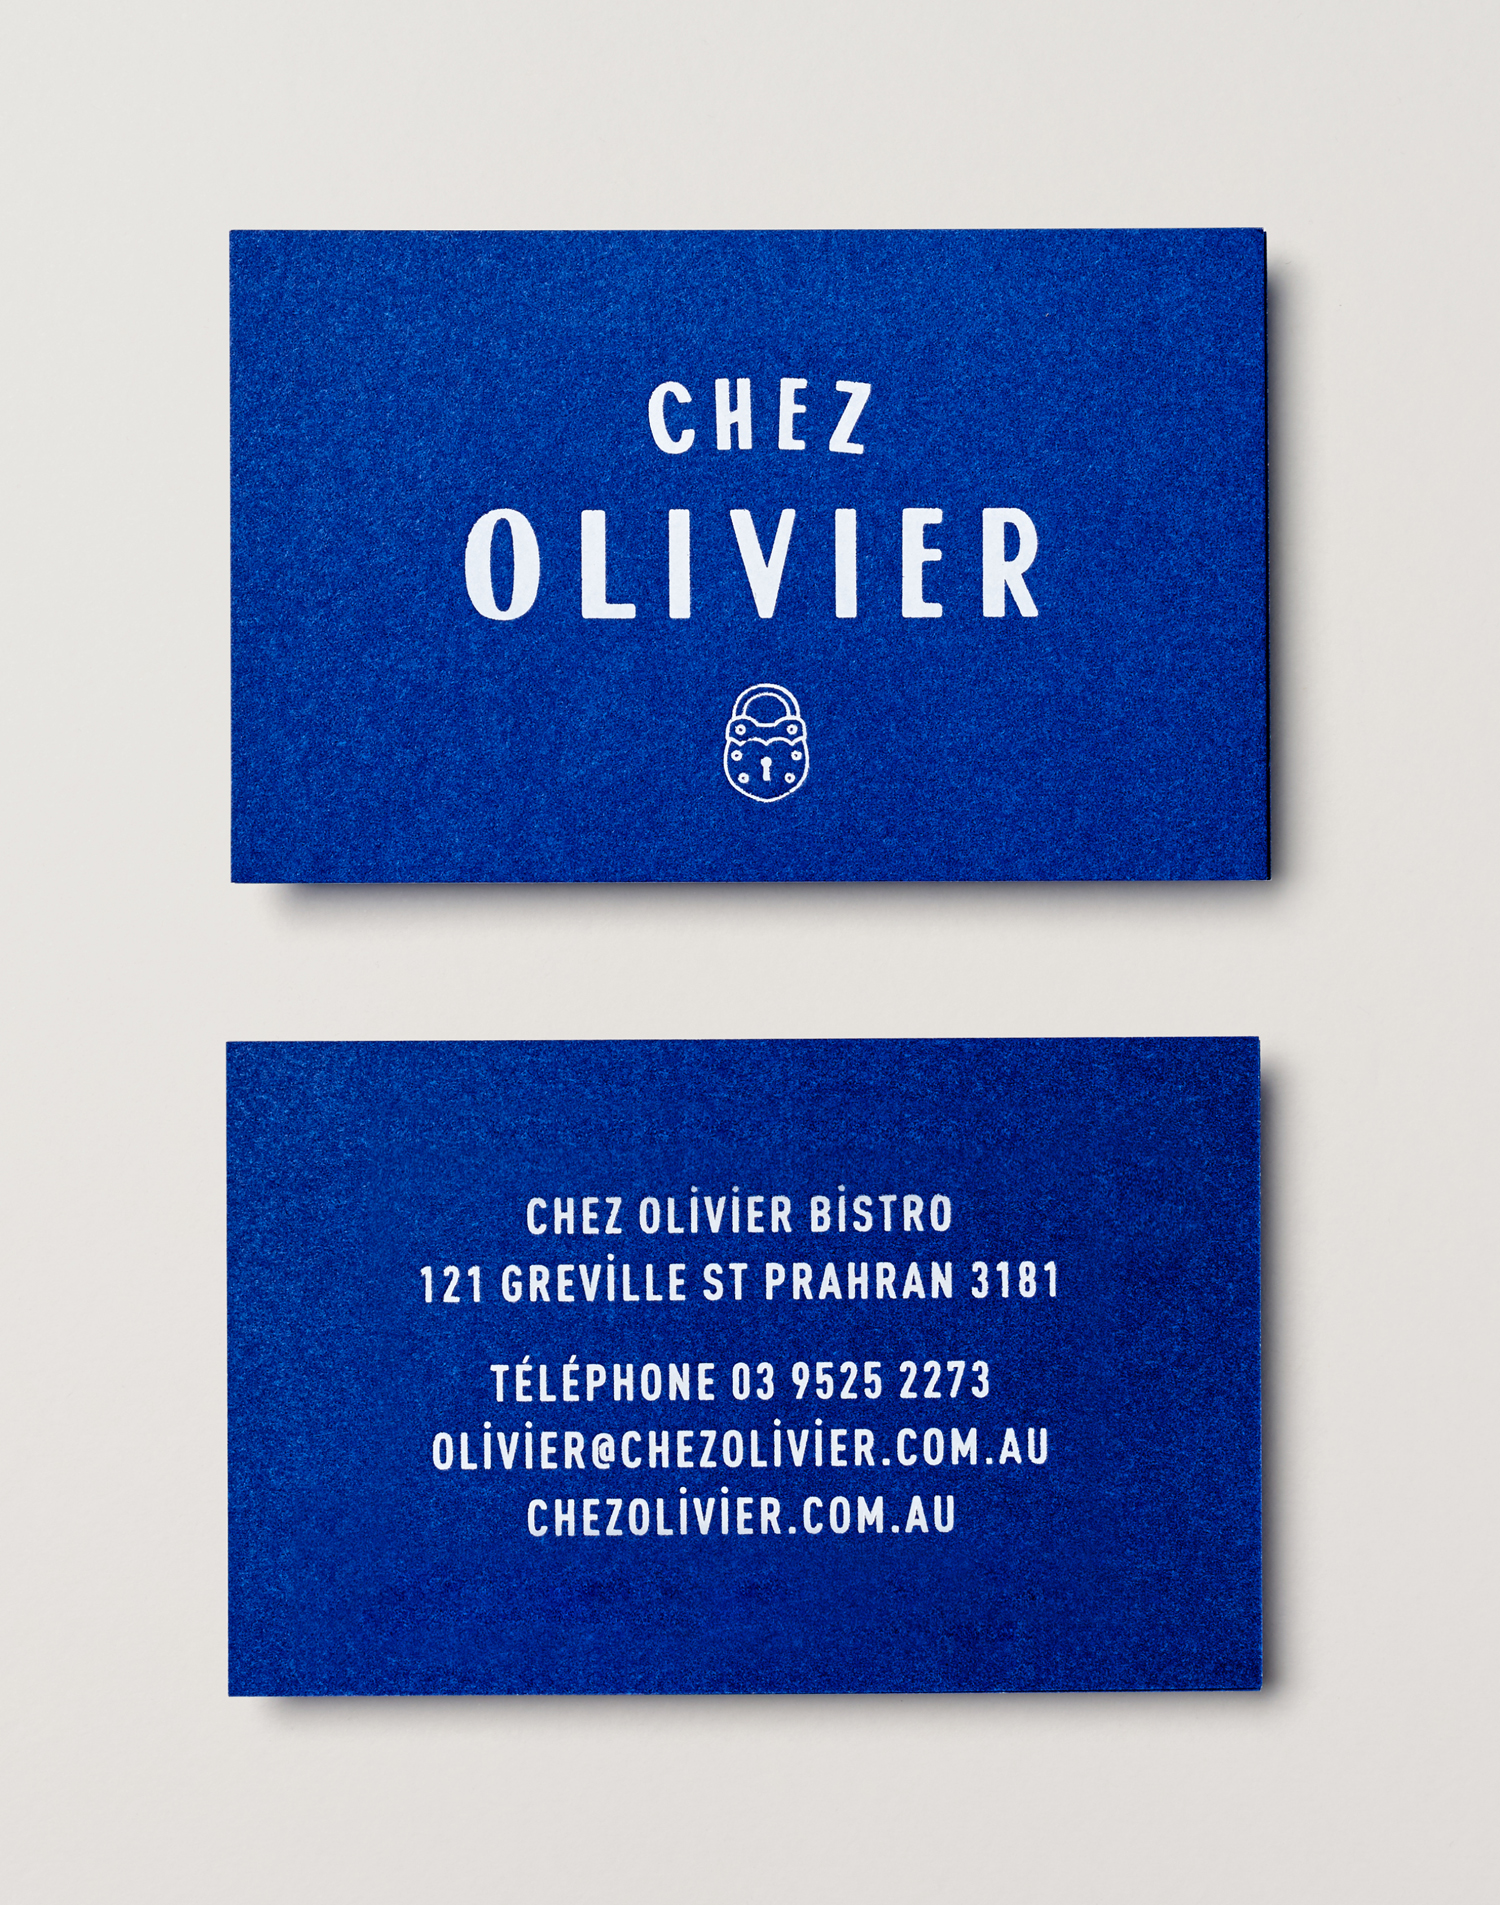 The Best Creative Business Cards 2017 – Chez Olivier by Swear Words, Australia